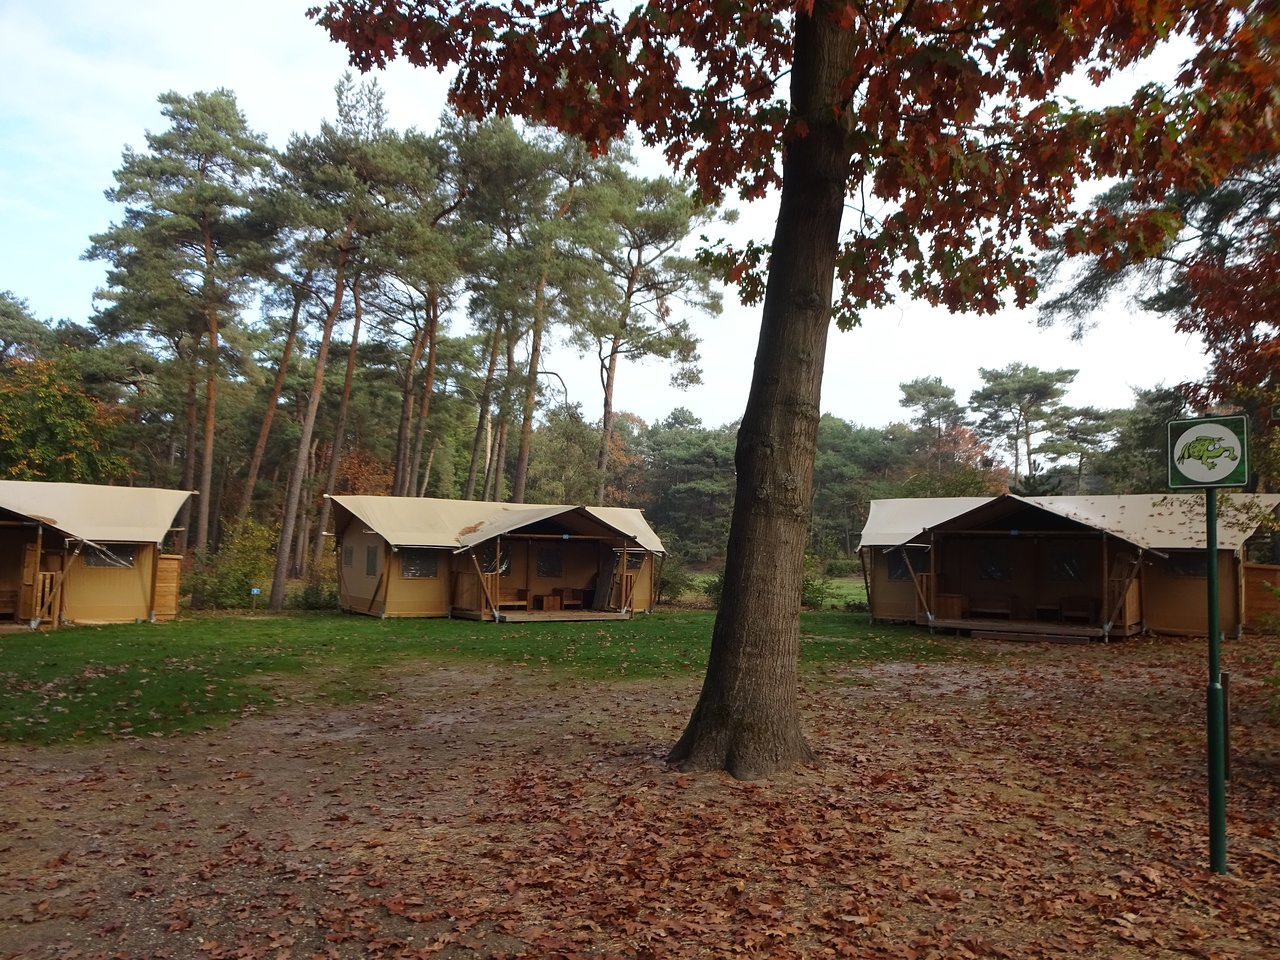 Roompot Mierlo Zwembad Roompot Vakanties Bospark T Wolfsven Updated 2019 Campground